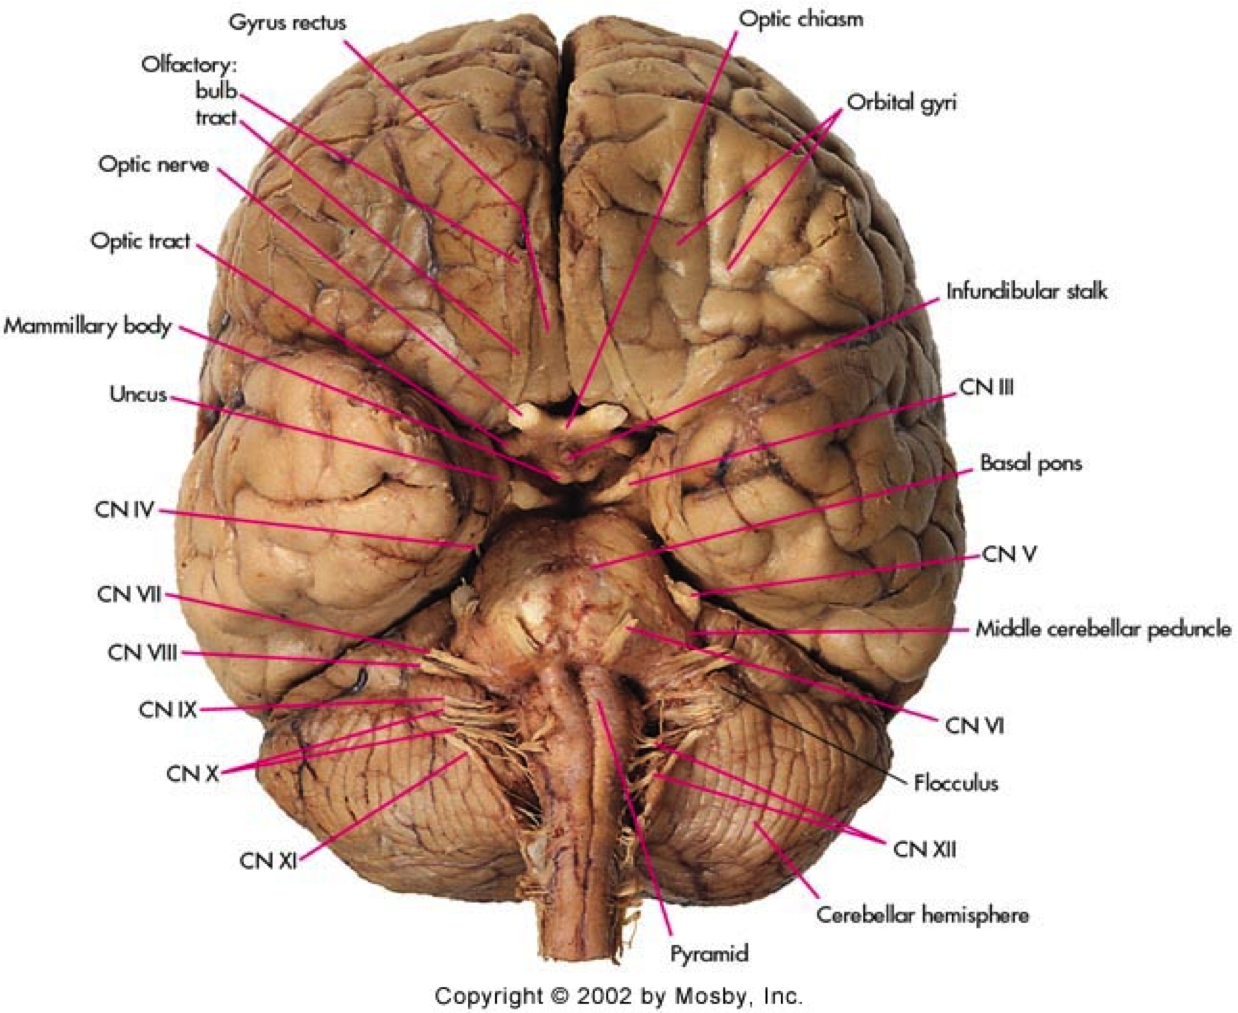 cranial nerves brainstem - Google Search | Cranial nerves ...